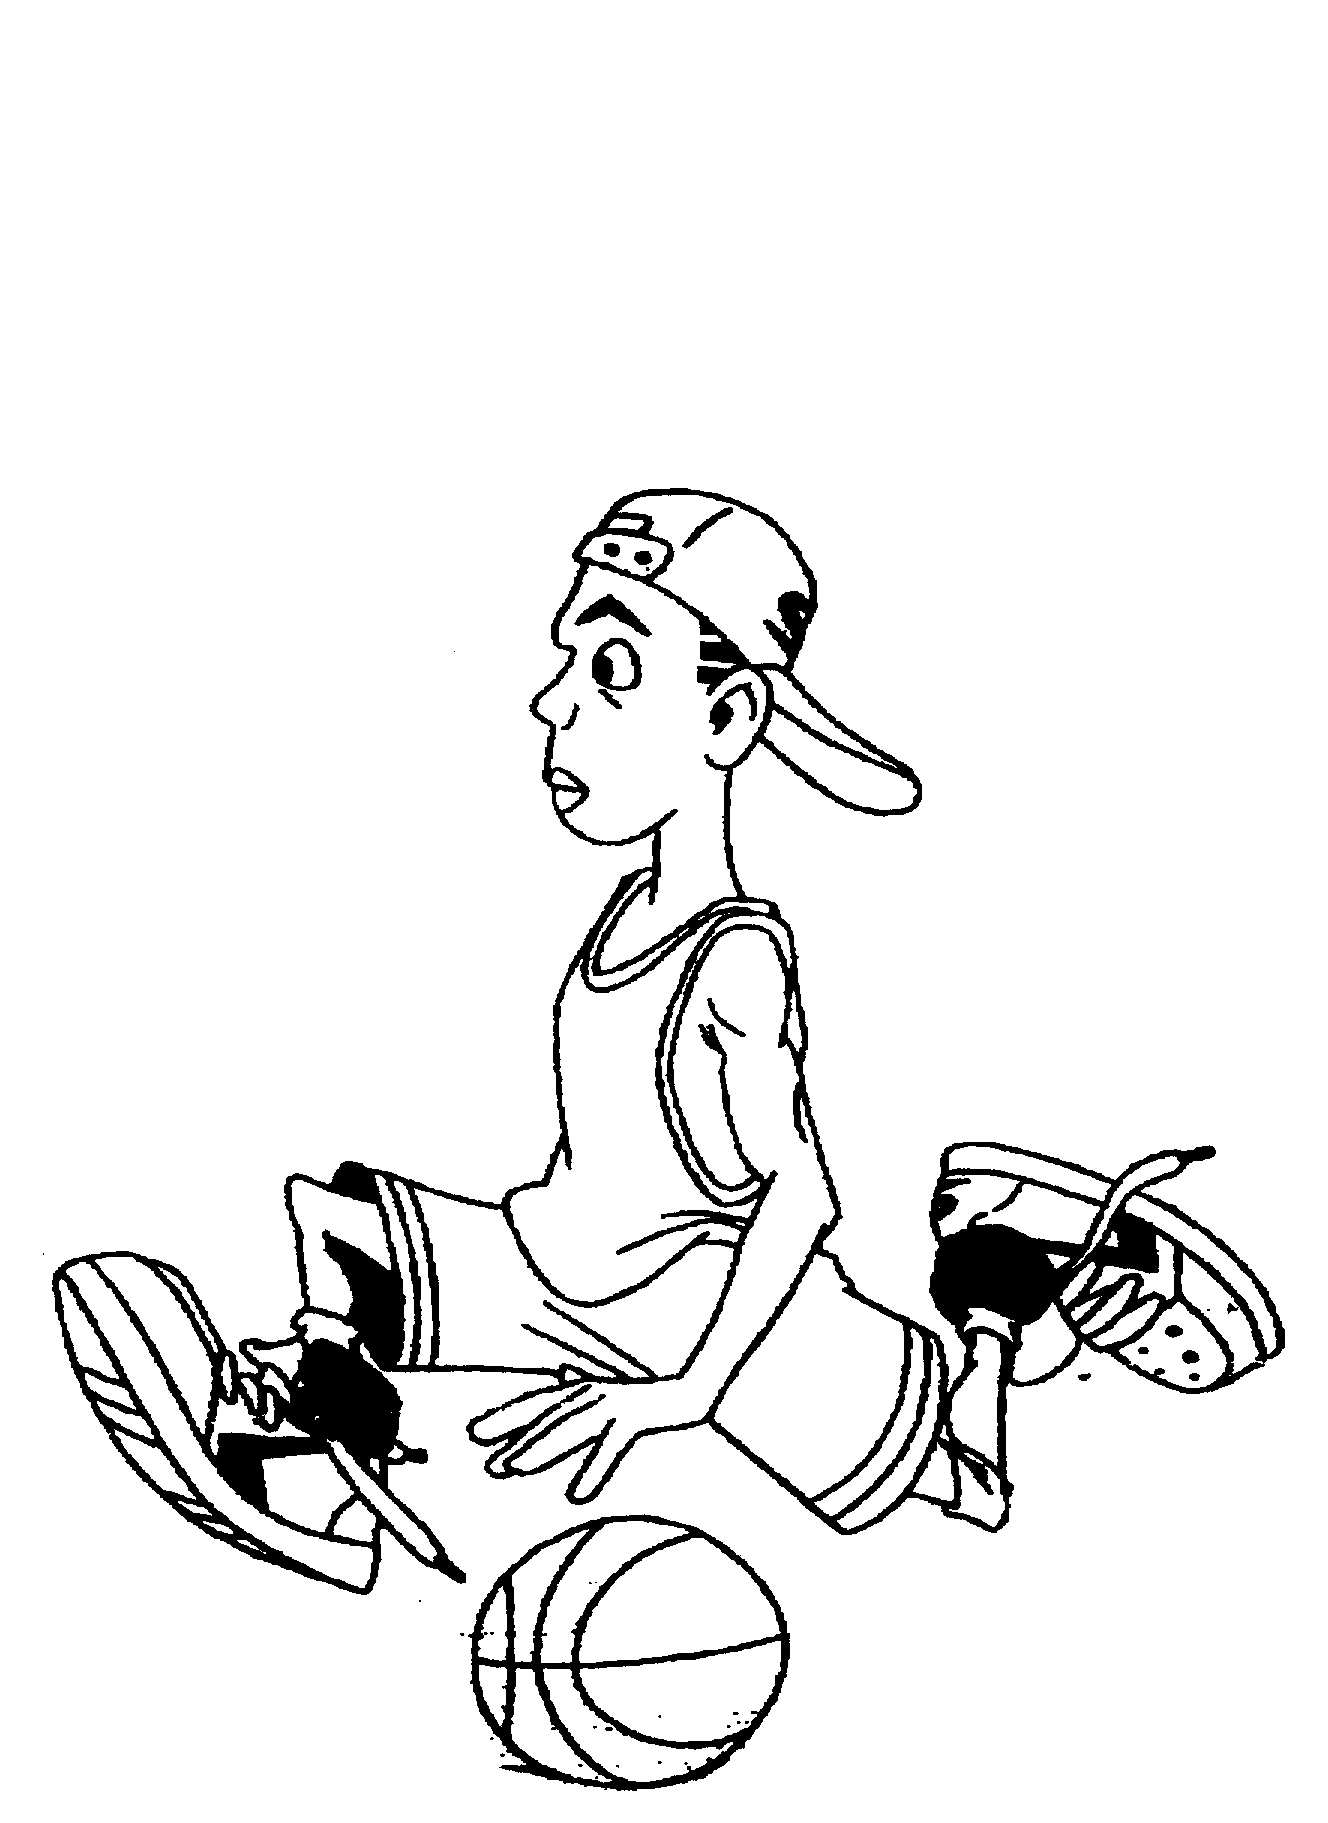 Cool Easy Basketball Drawings | Www.imgkid.com - The Image Kid Has It!